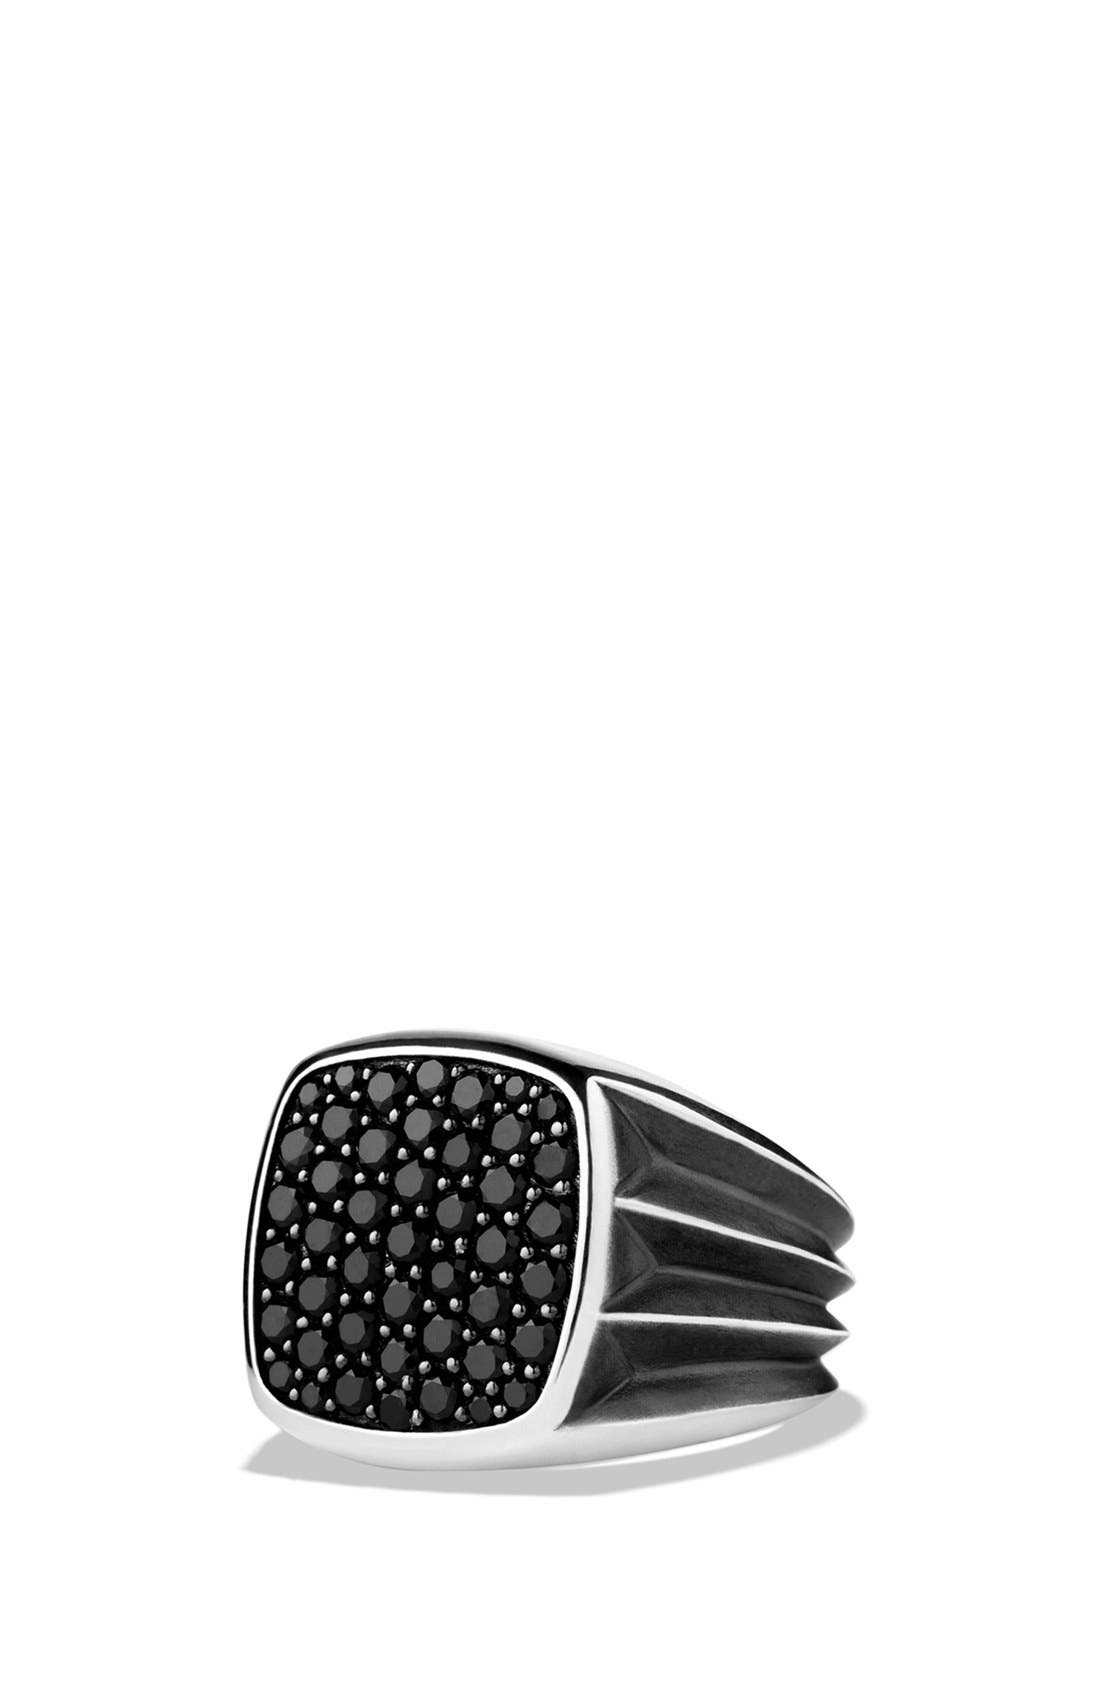 'Knife Edge' Signet Ring with Black Diamonds,                             Main thumbnail 1, color,                             Black Diamond